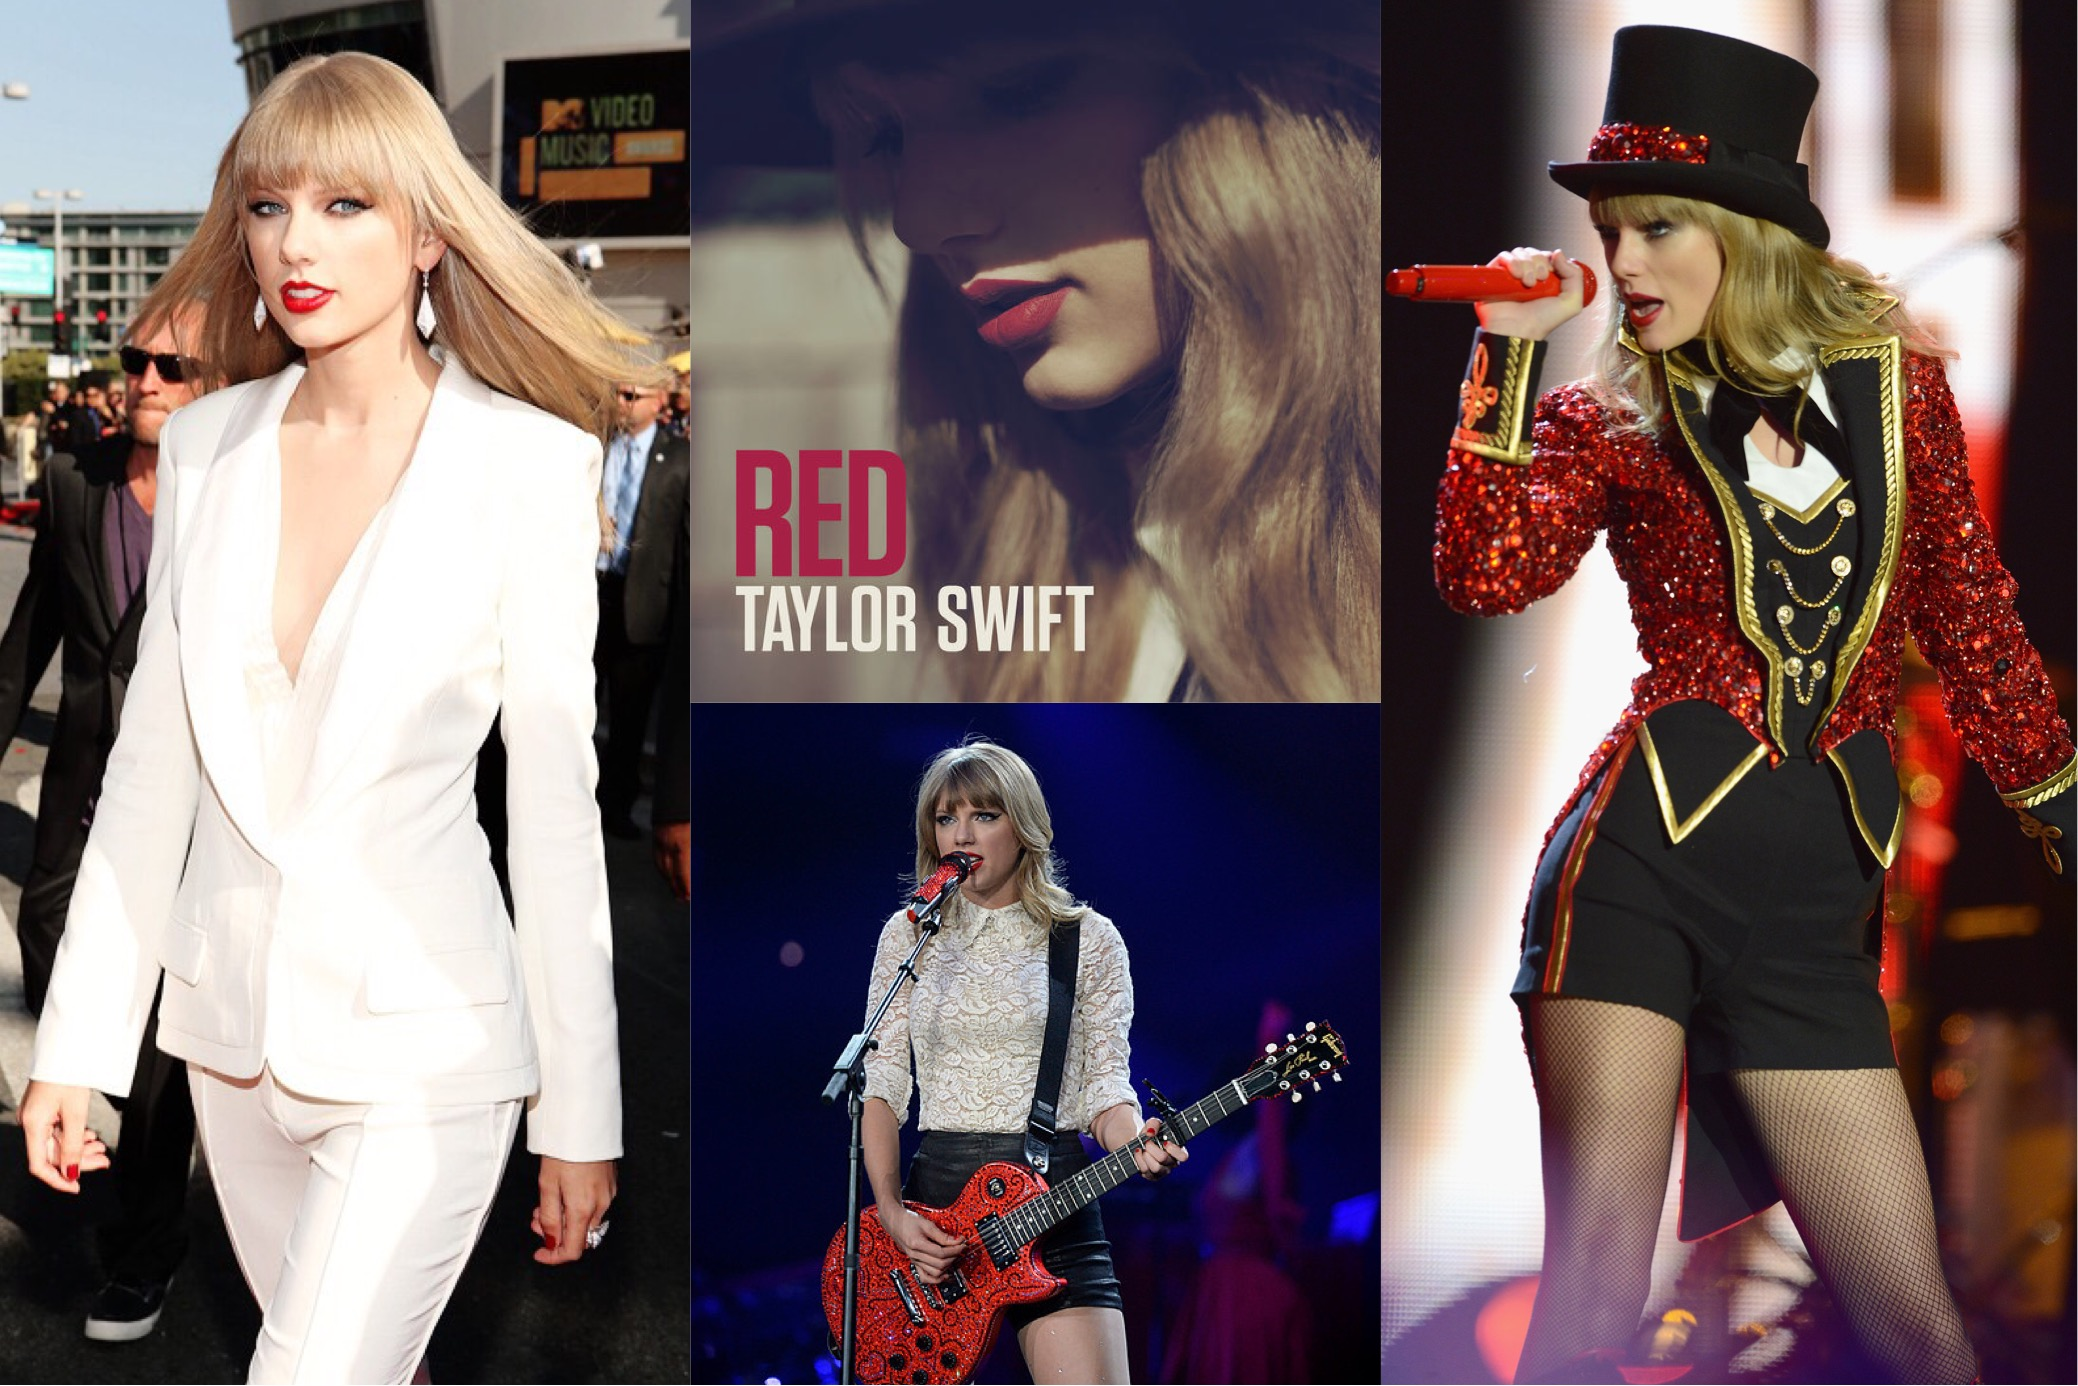 Taylor Swift at the 2012 MTV Video Music Awards in J. Mendel,  Red  (2012) album cover, 2013 Red Tour concert in Denver, performing on the Red Tour 2013-2014   (Photo: Tumblr, iTunes, John Leyba/The Denver Post, Dave J. Hogan/Getty Images )